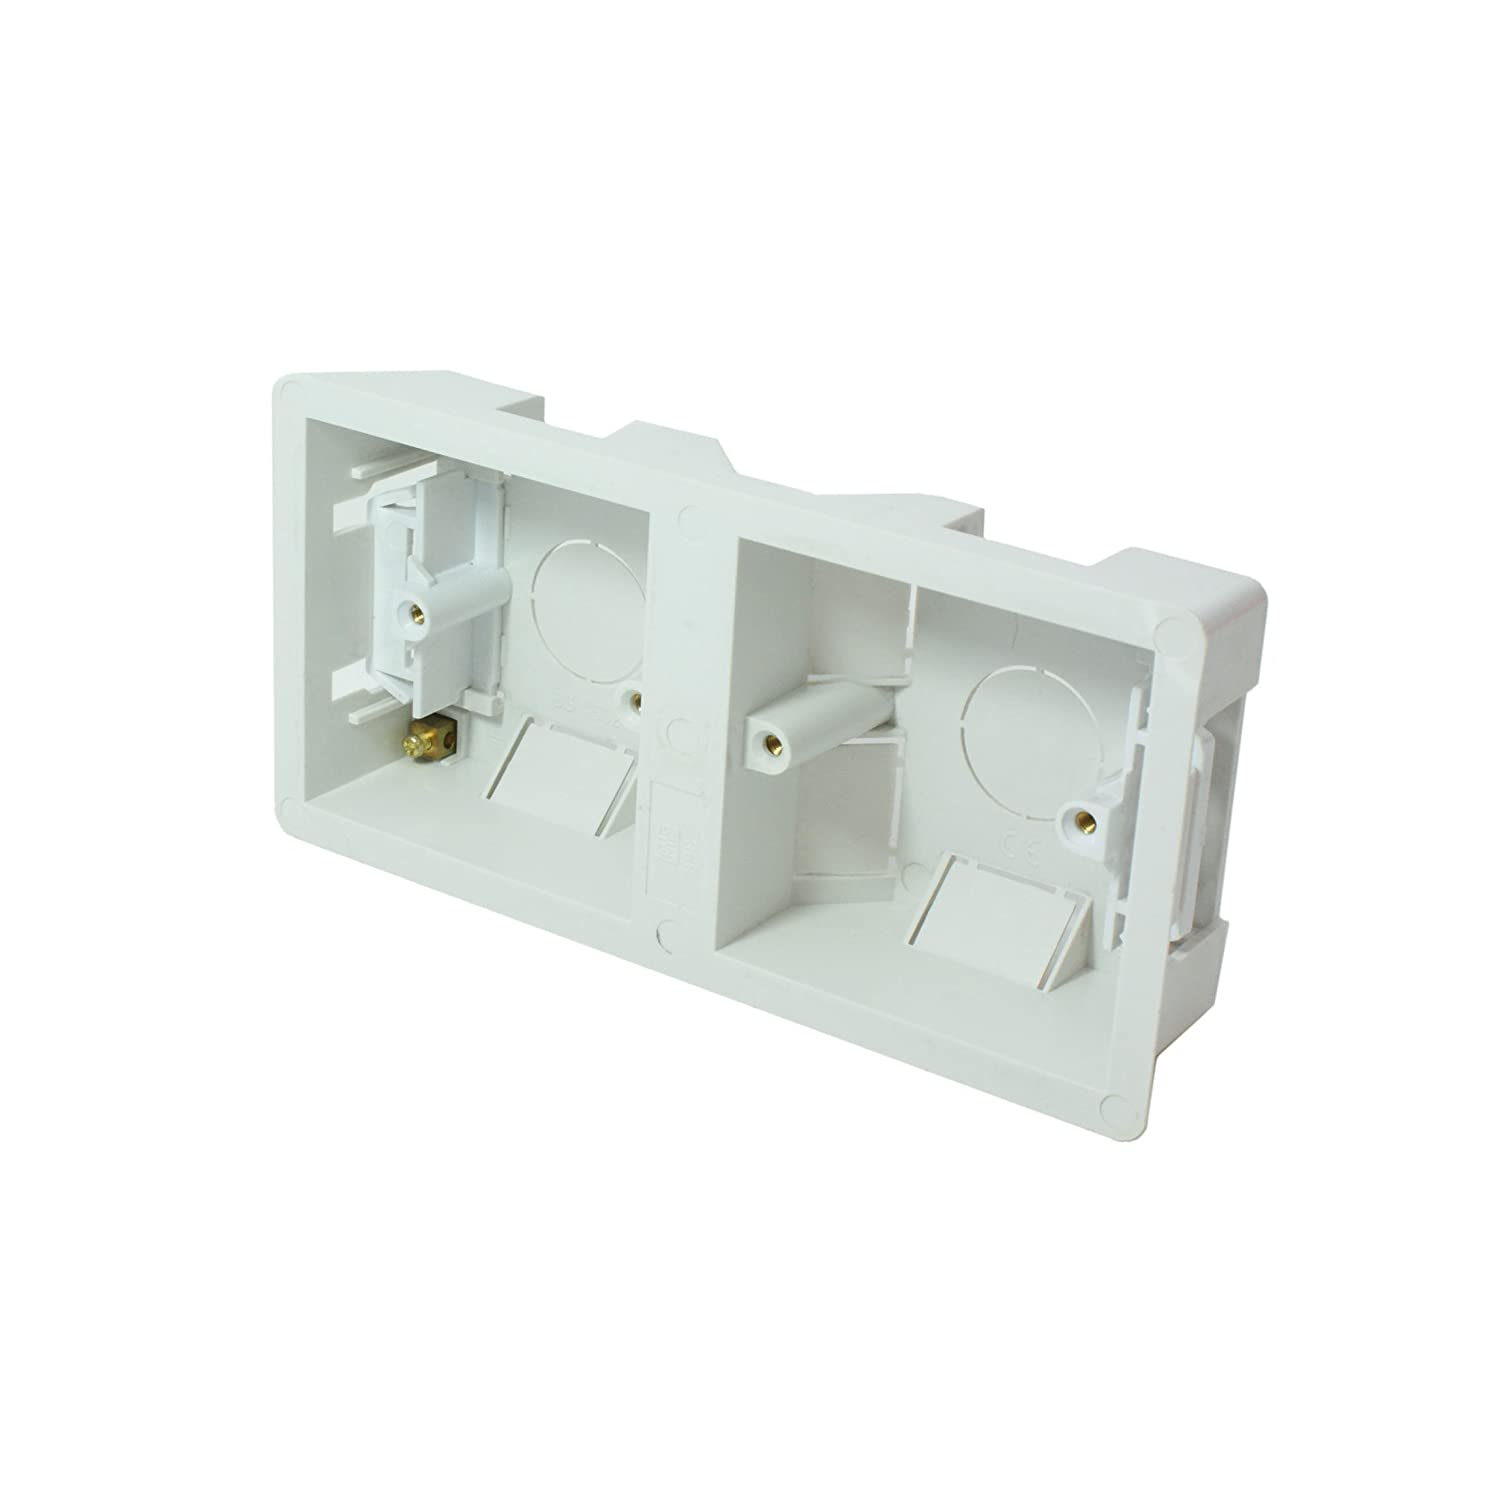 35mm Deep Double/Dual Plastic Dry Lining Back Box - 1 Gang Wall Flush Mount Pattress Loops 481